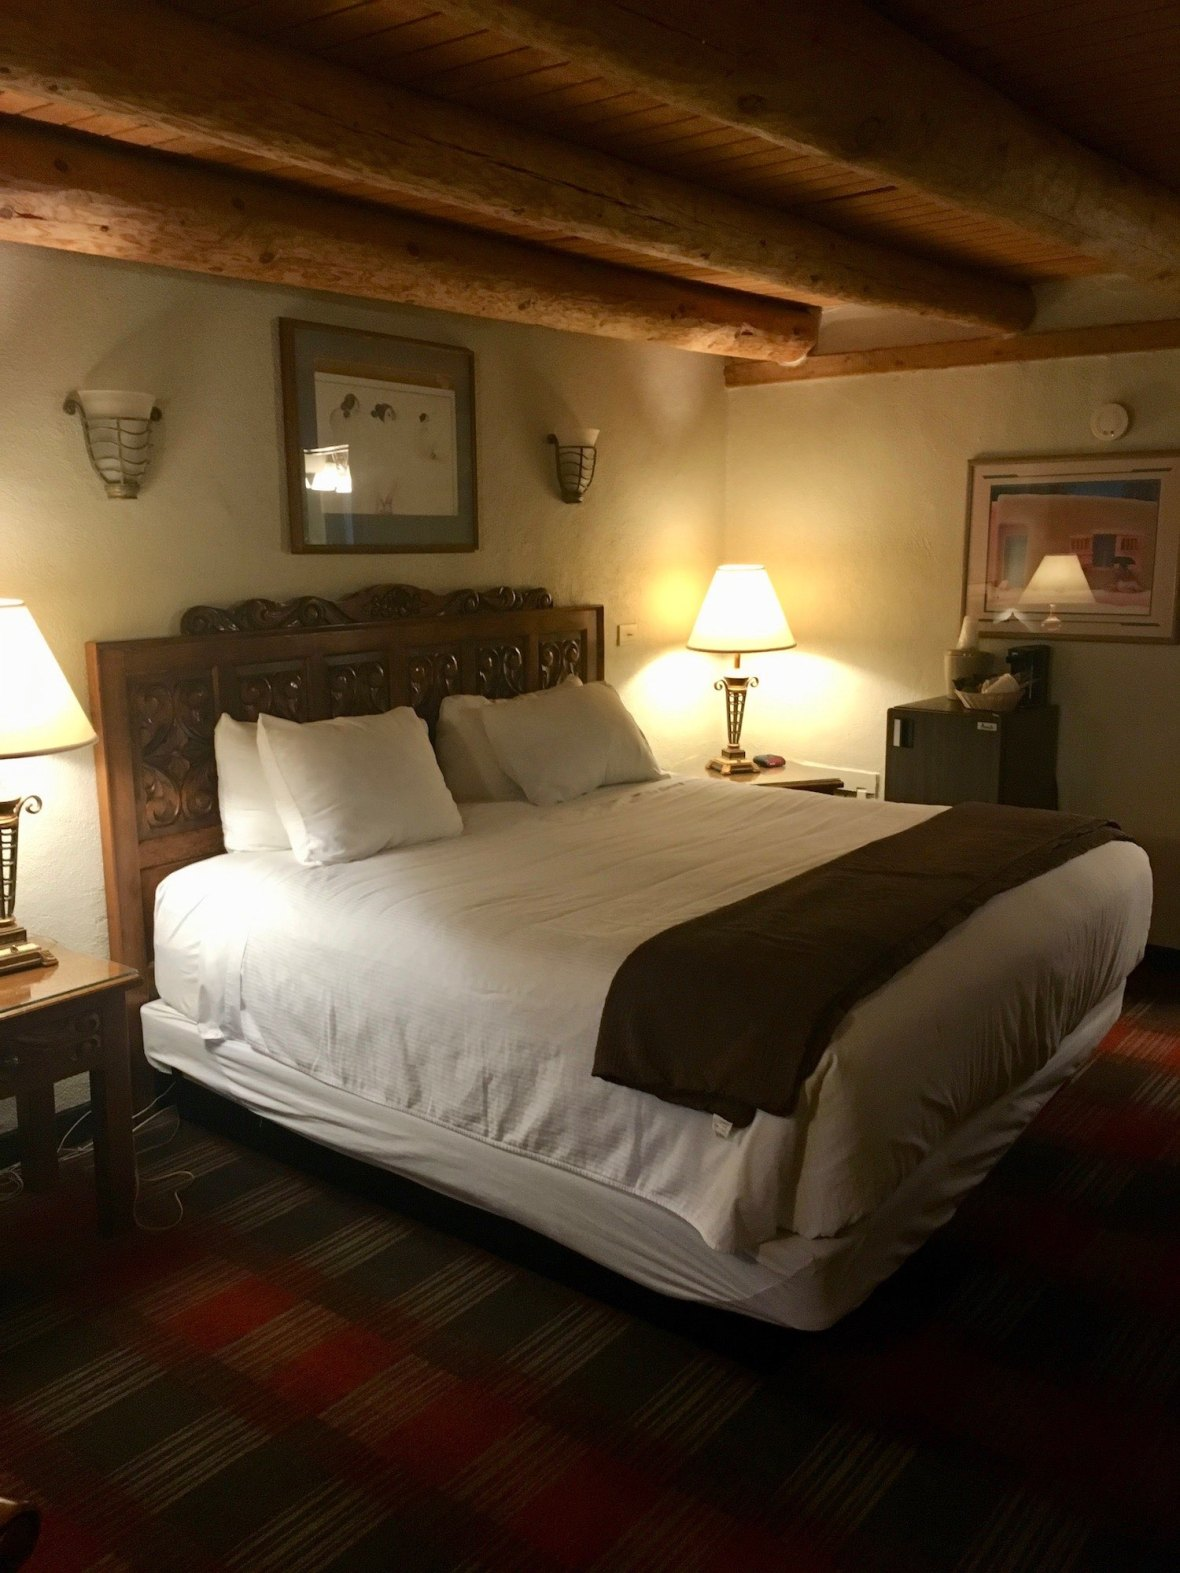 My dog-friendly room at the Historic Sagebrush Inn in Taos, New Mexico